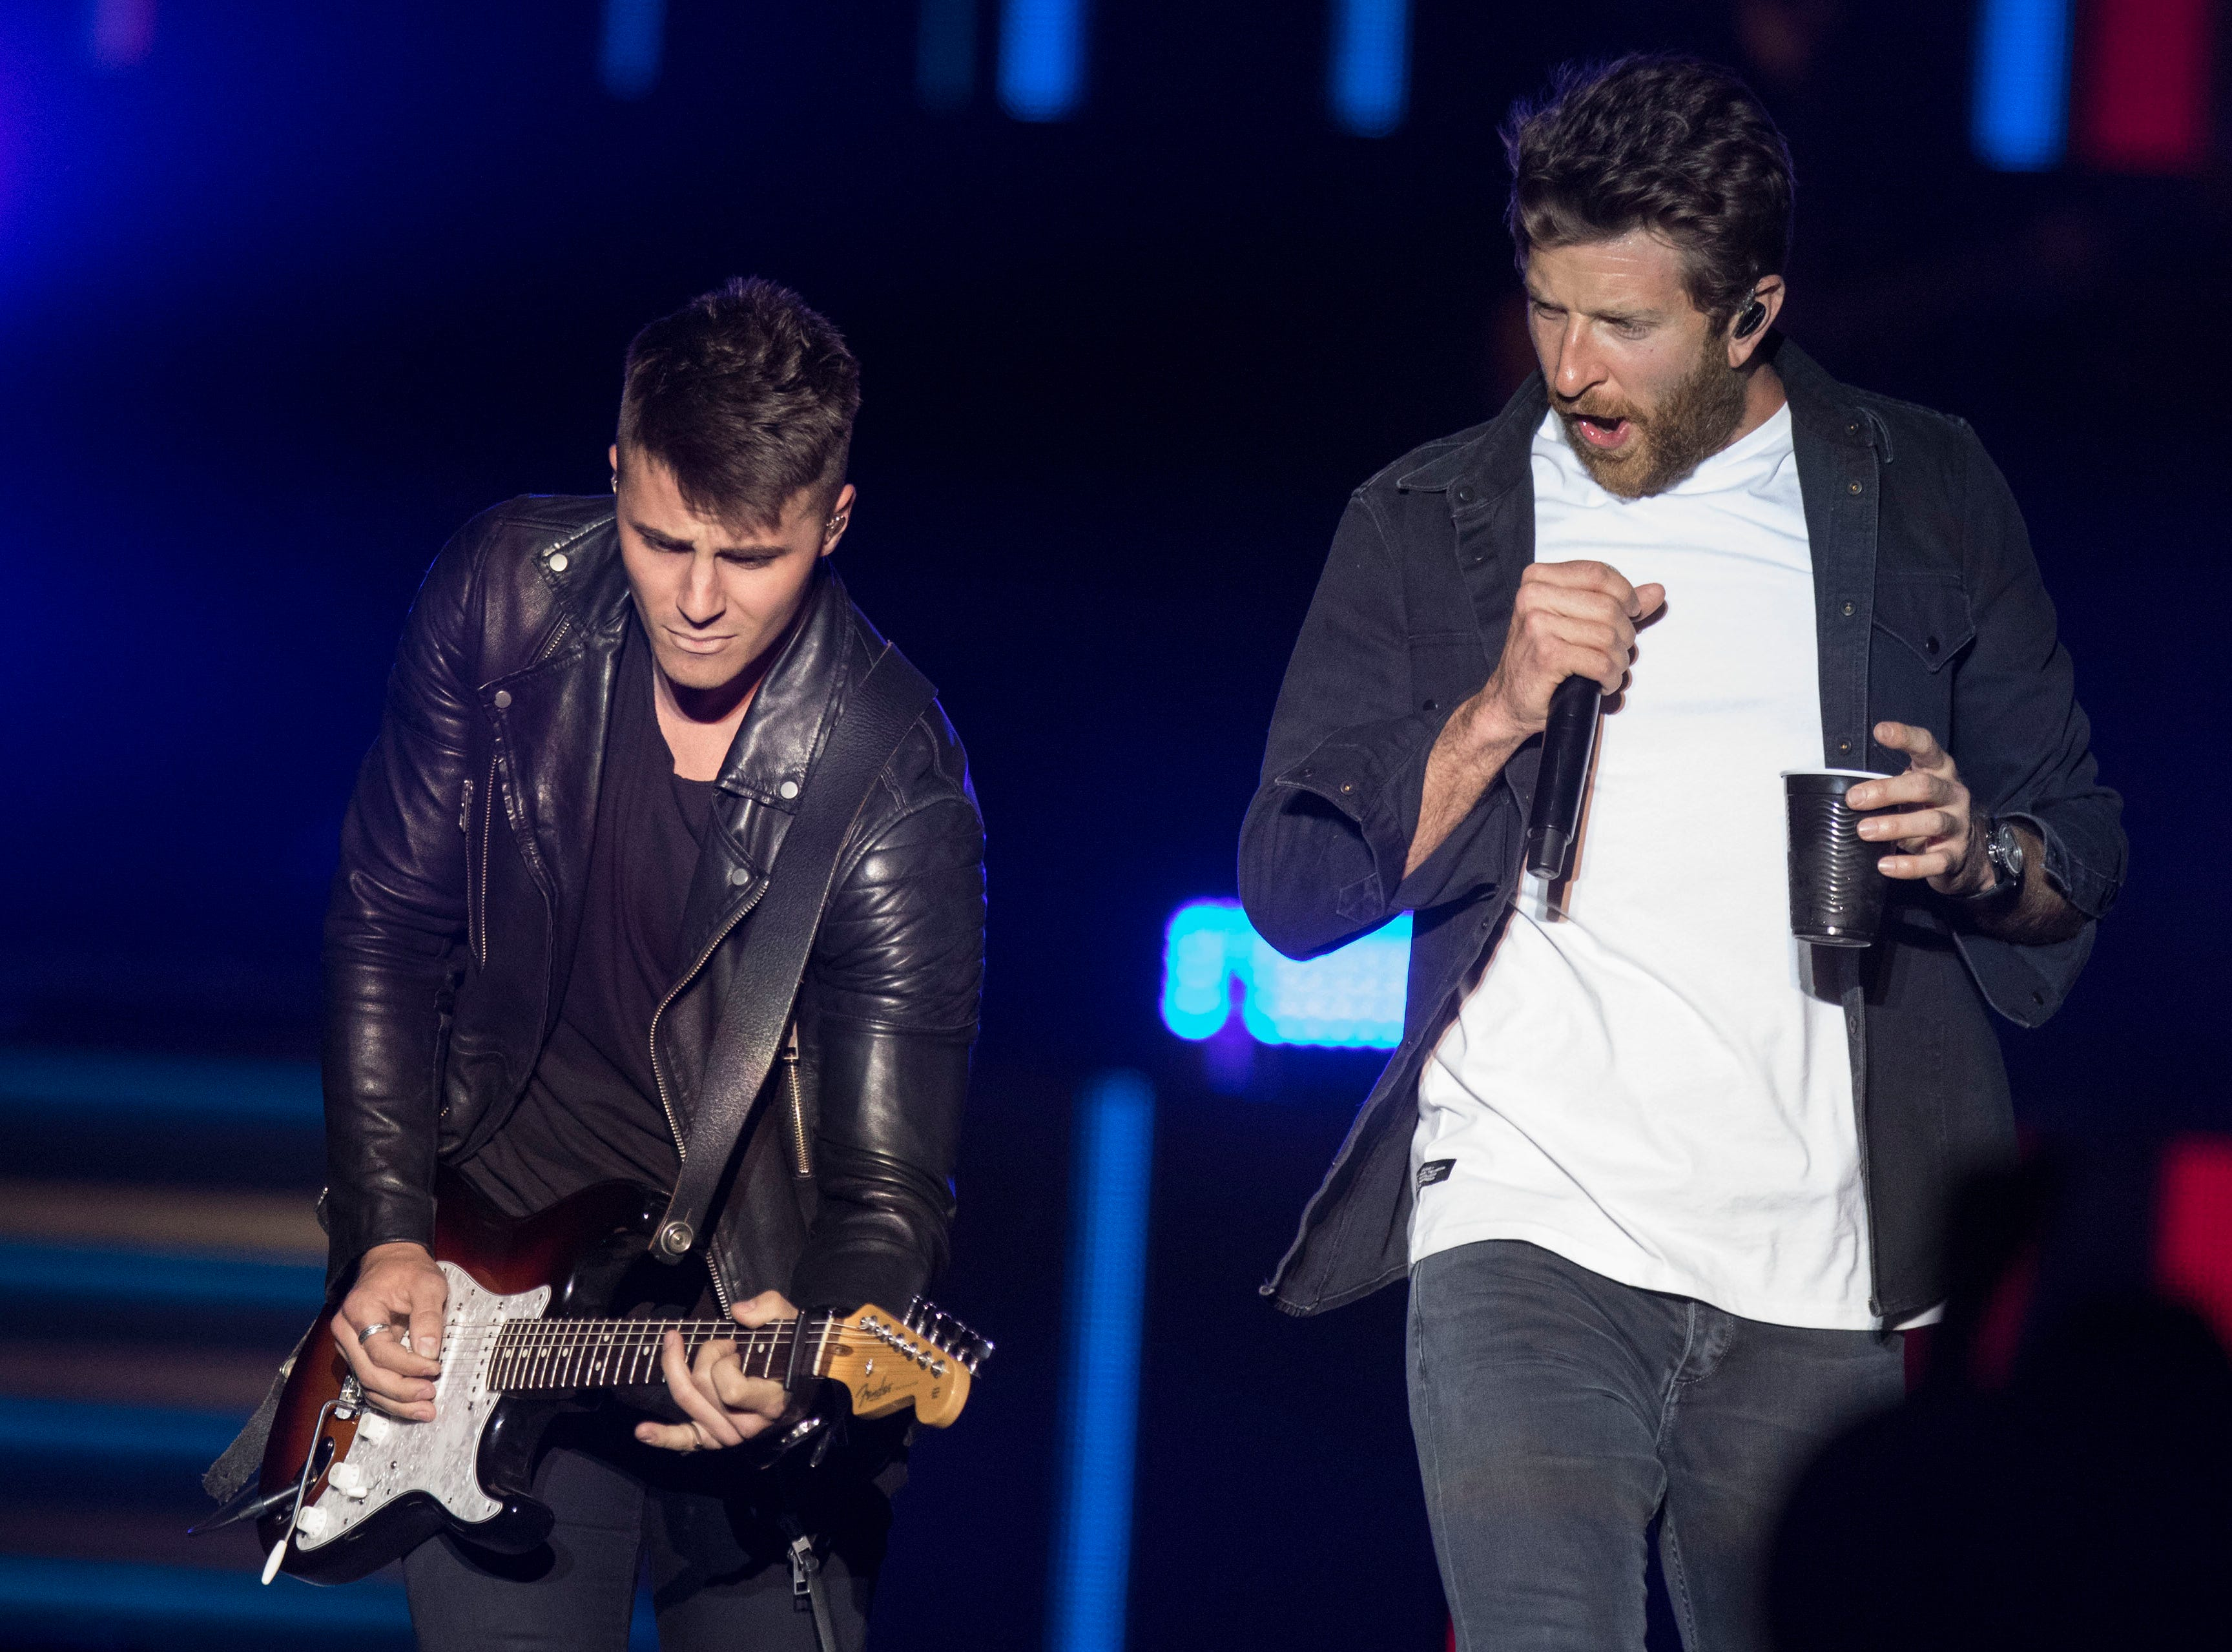 Brett Eldredge (right) entertains the crowd during Country Thunder Arizona April 11, 2019, in Florence.